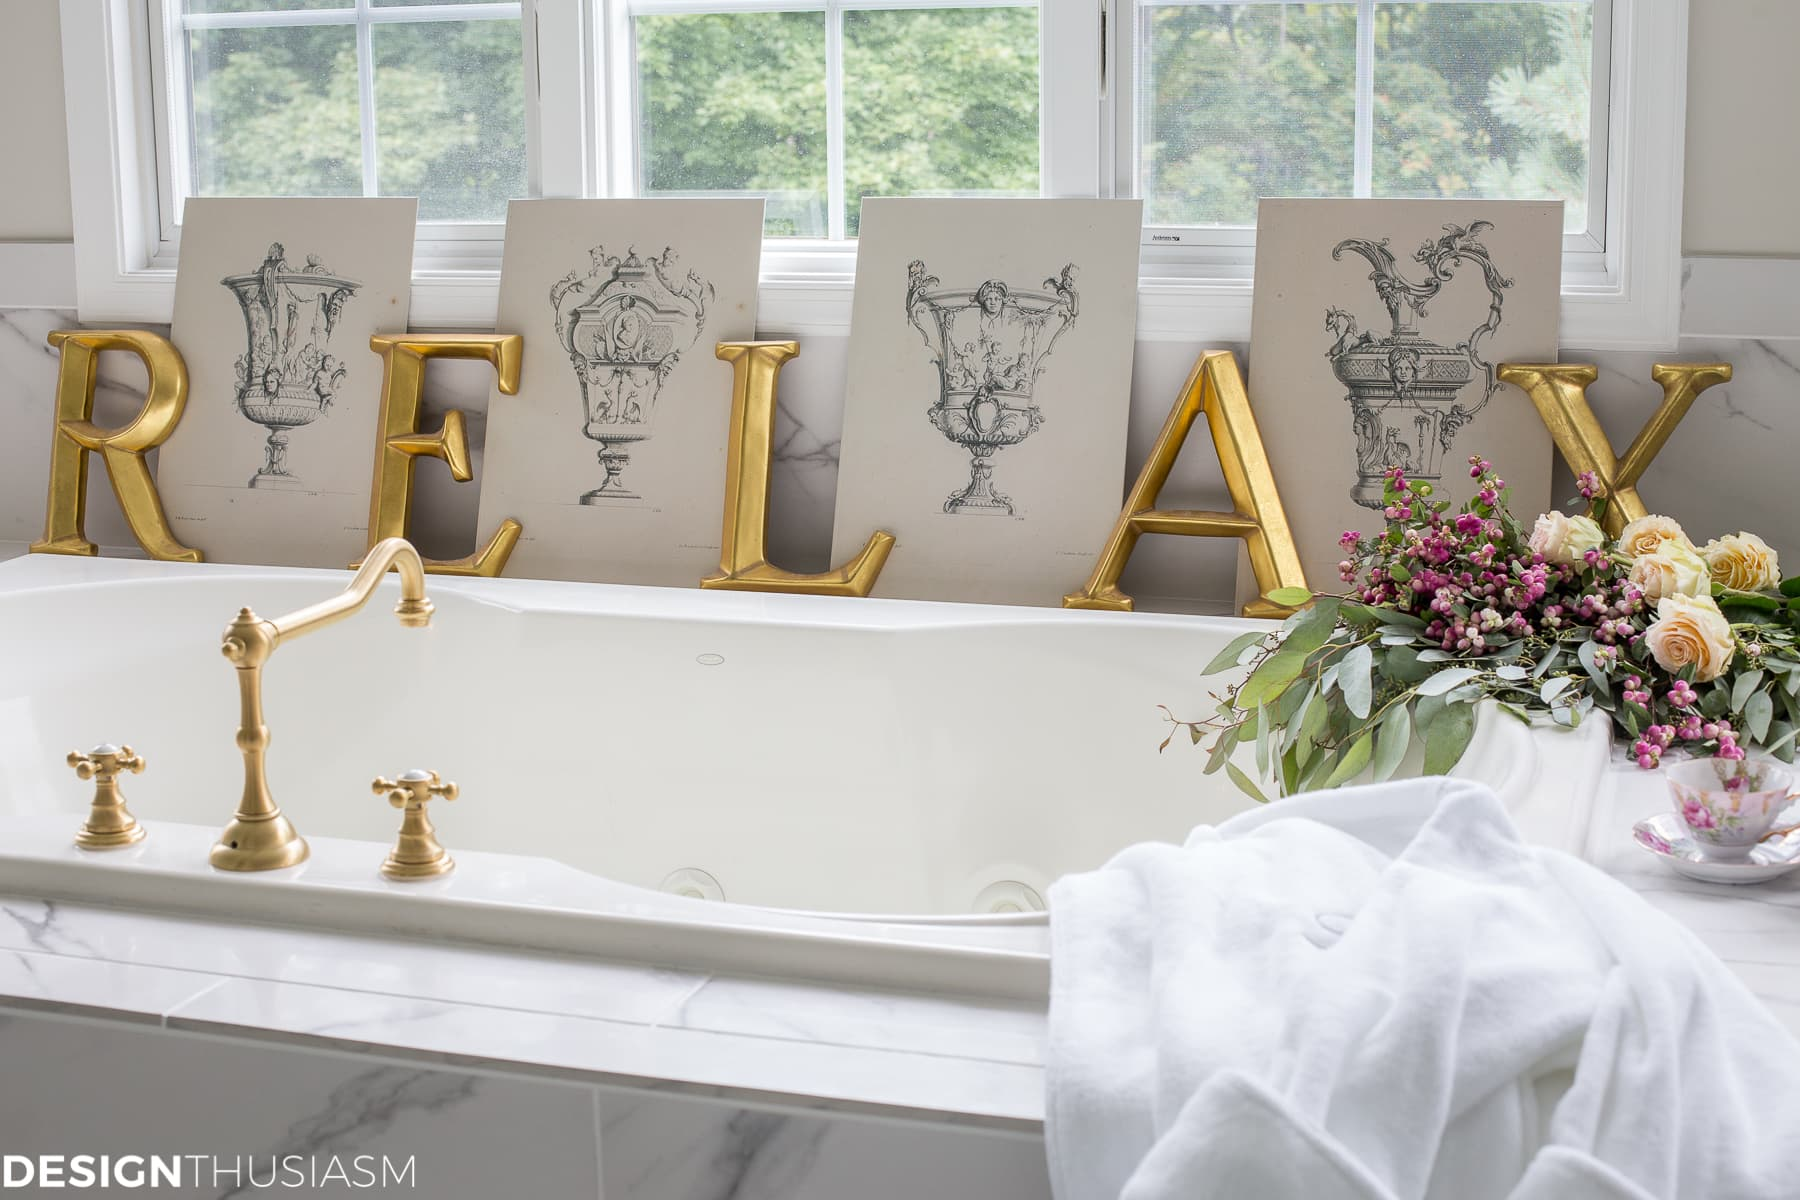 Home Bath Spa: 5 Affordable Ways to Indulge in a Luxury Bath